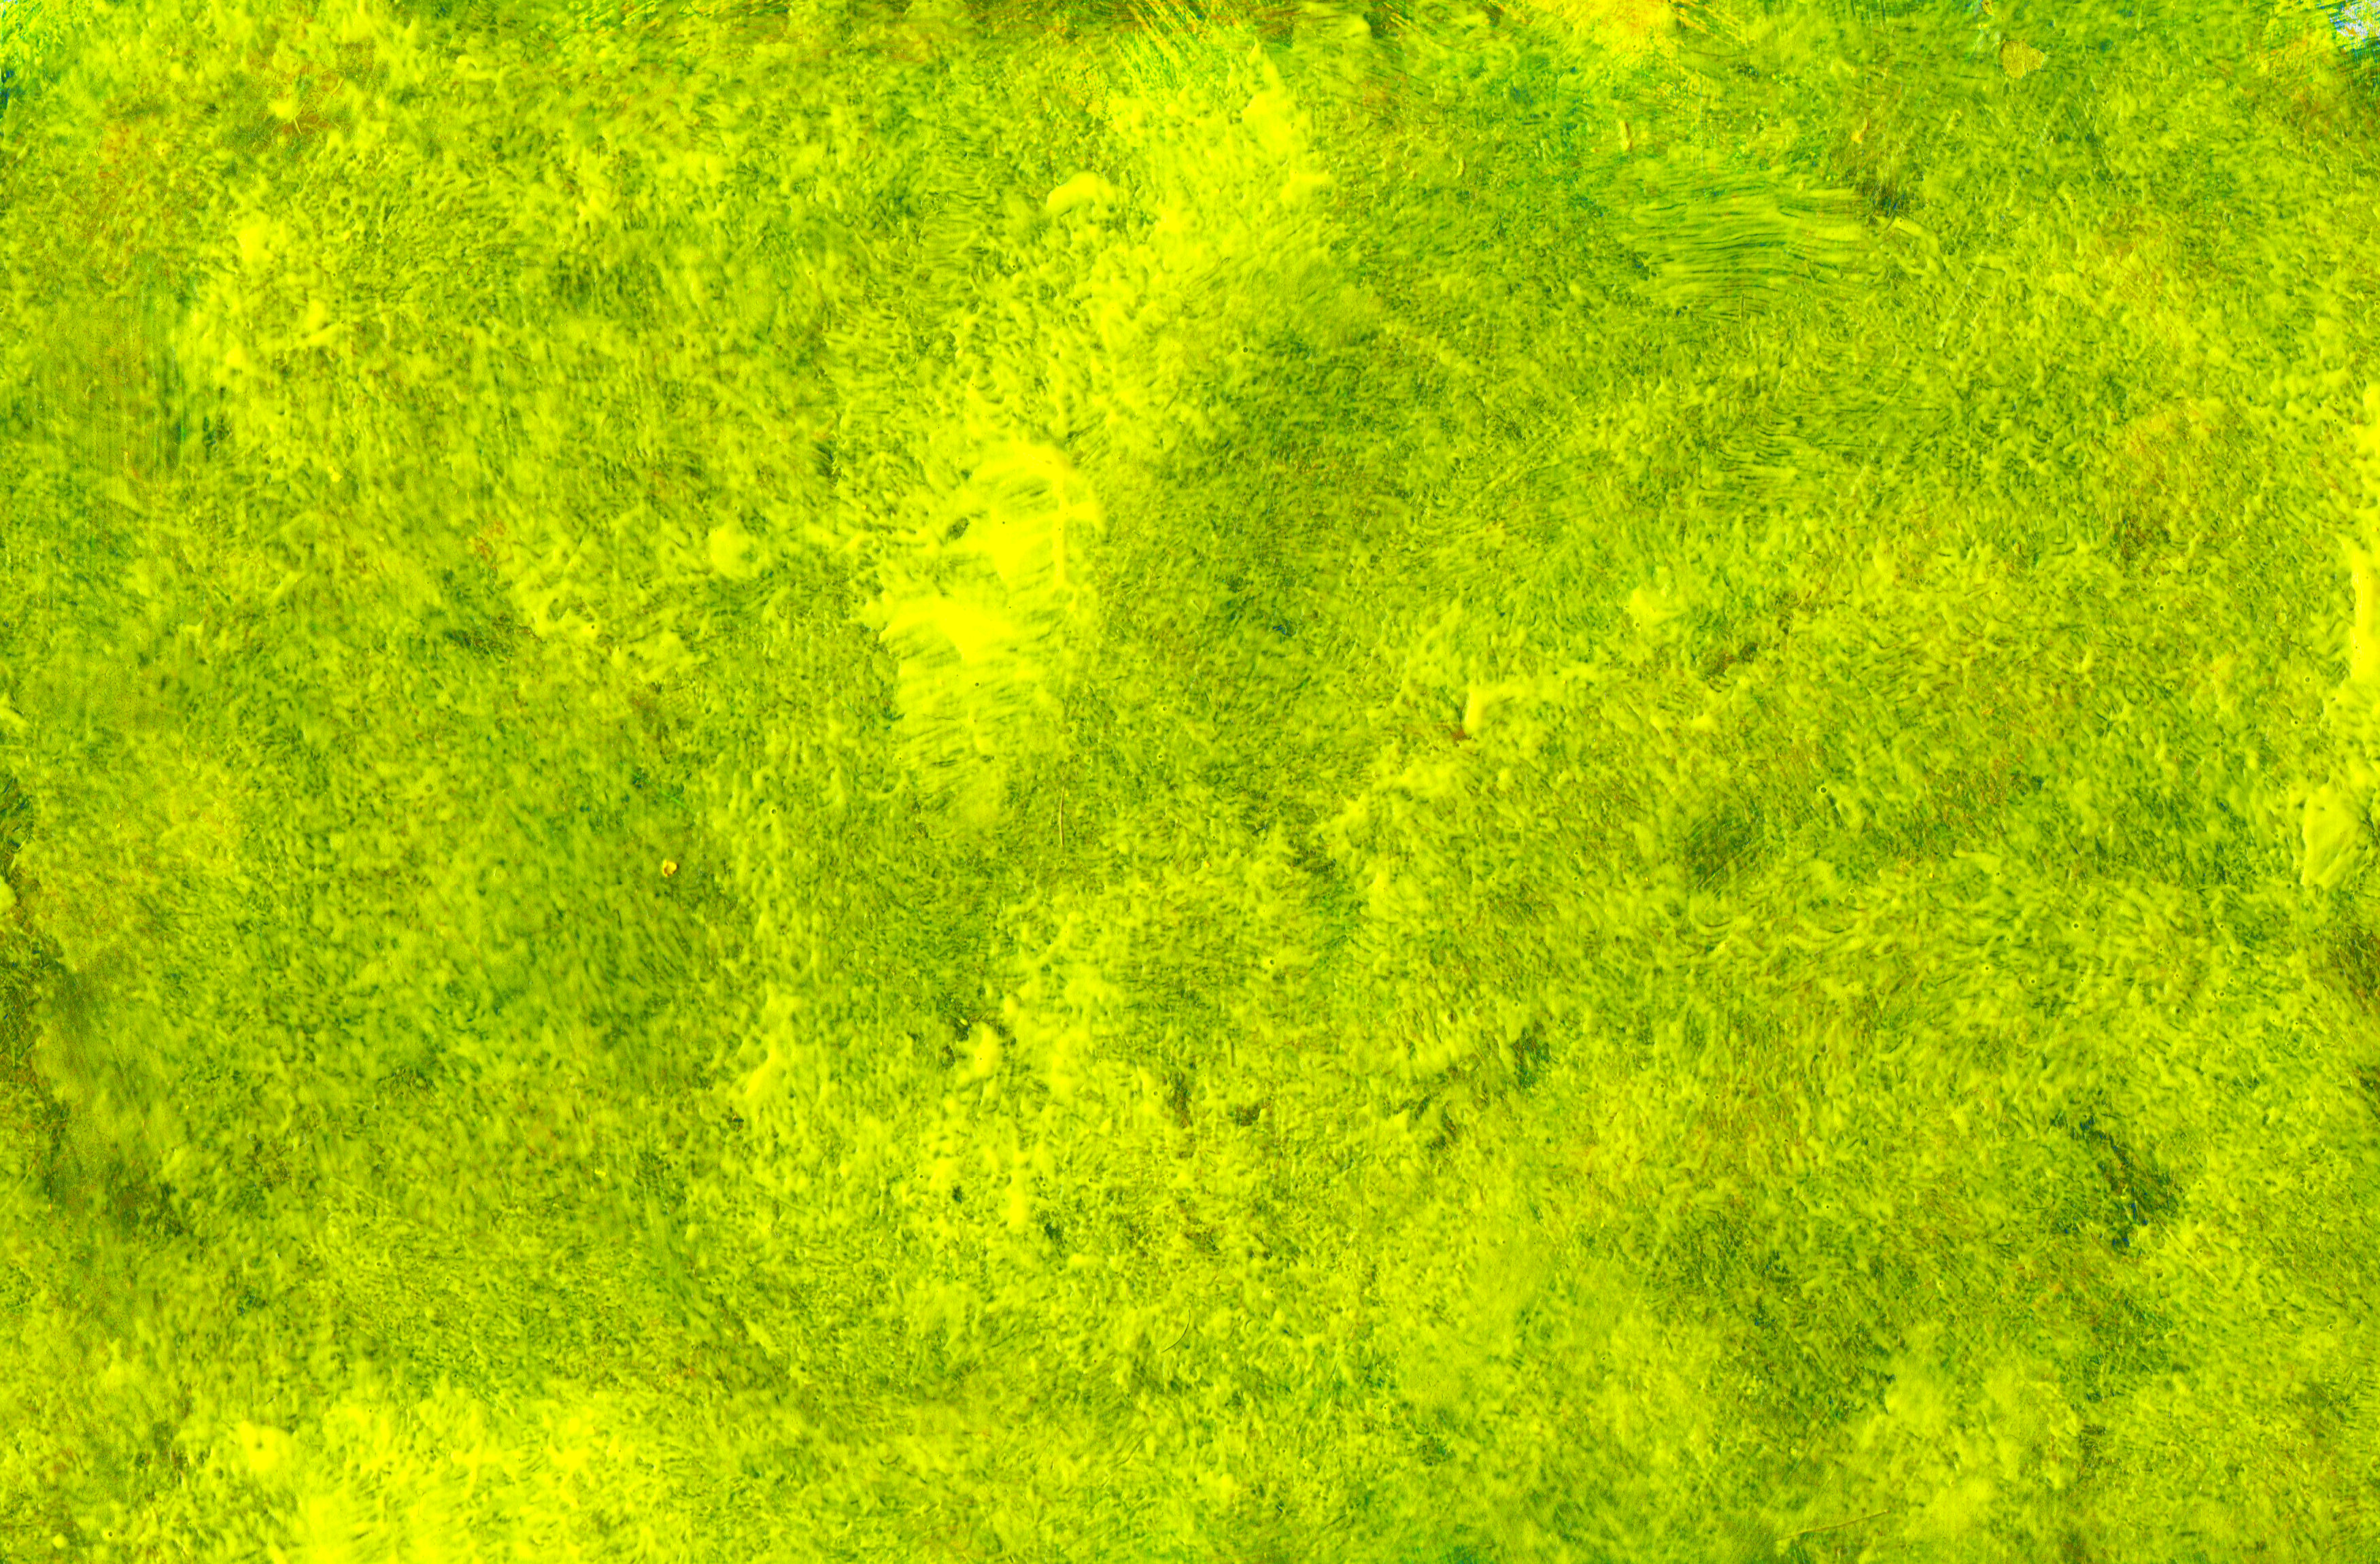 Yellow green paint texture jpg for Texture paint images